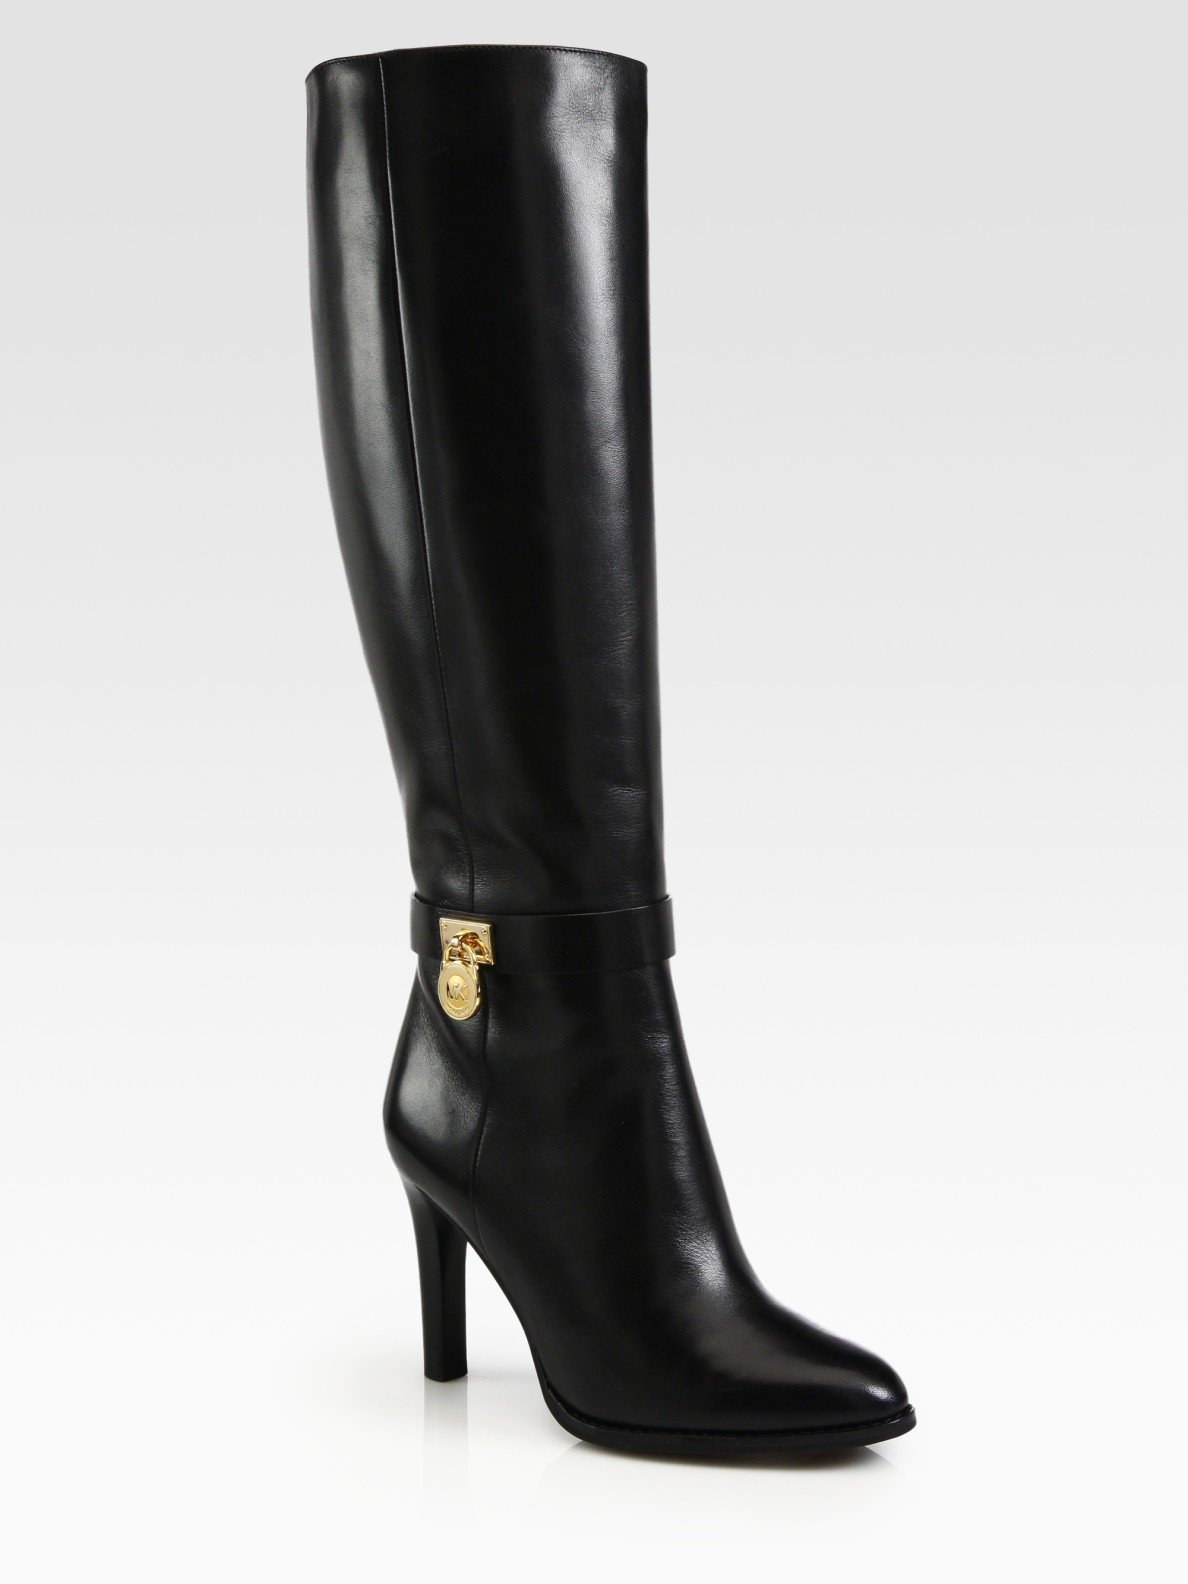 Michael By Michael Kors Hamilton Leather Boots Black on Color Learn Rain